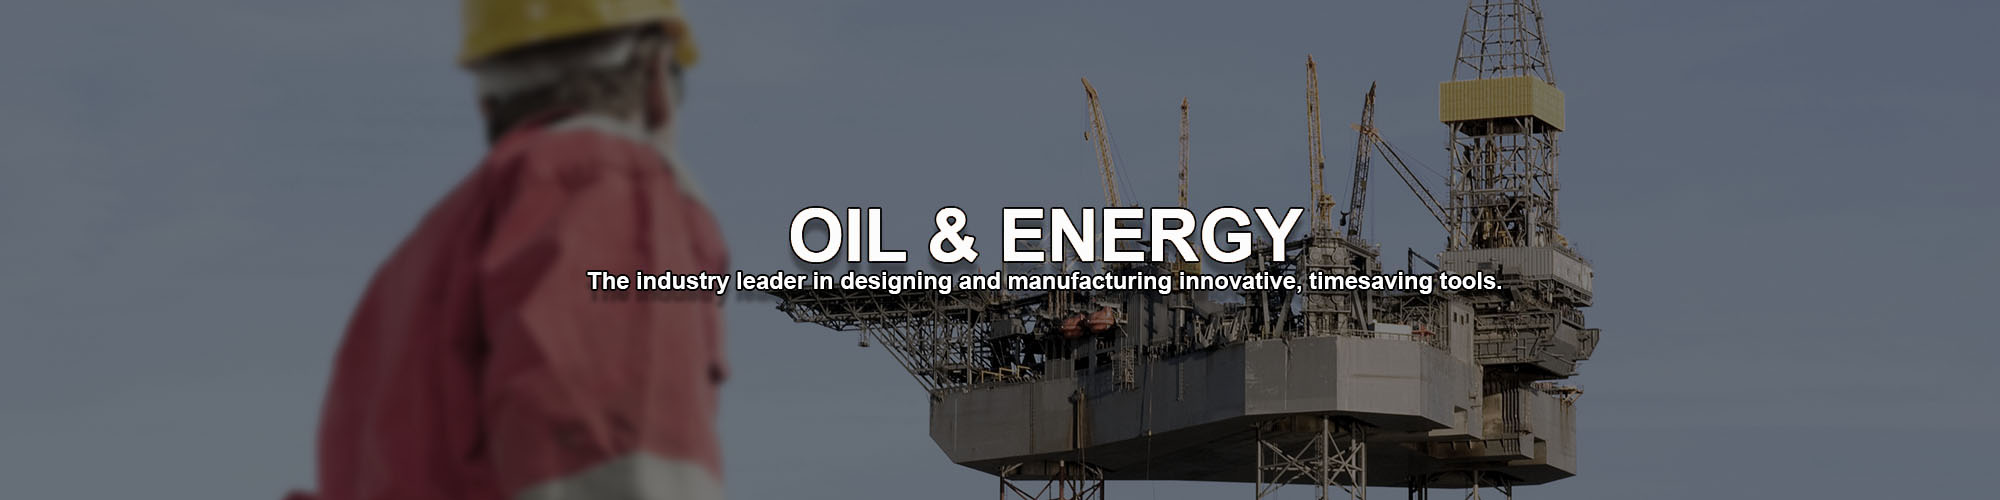 Oil and Enegry-01